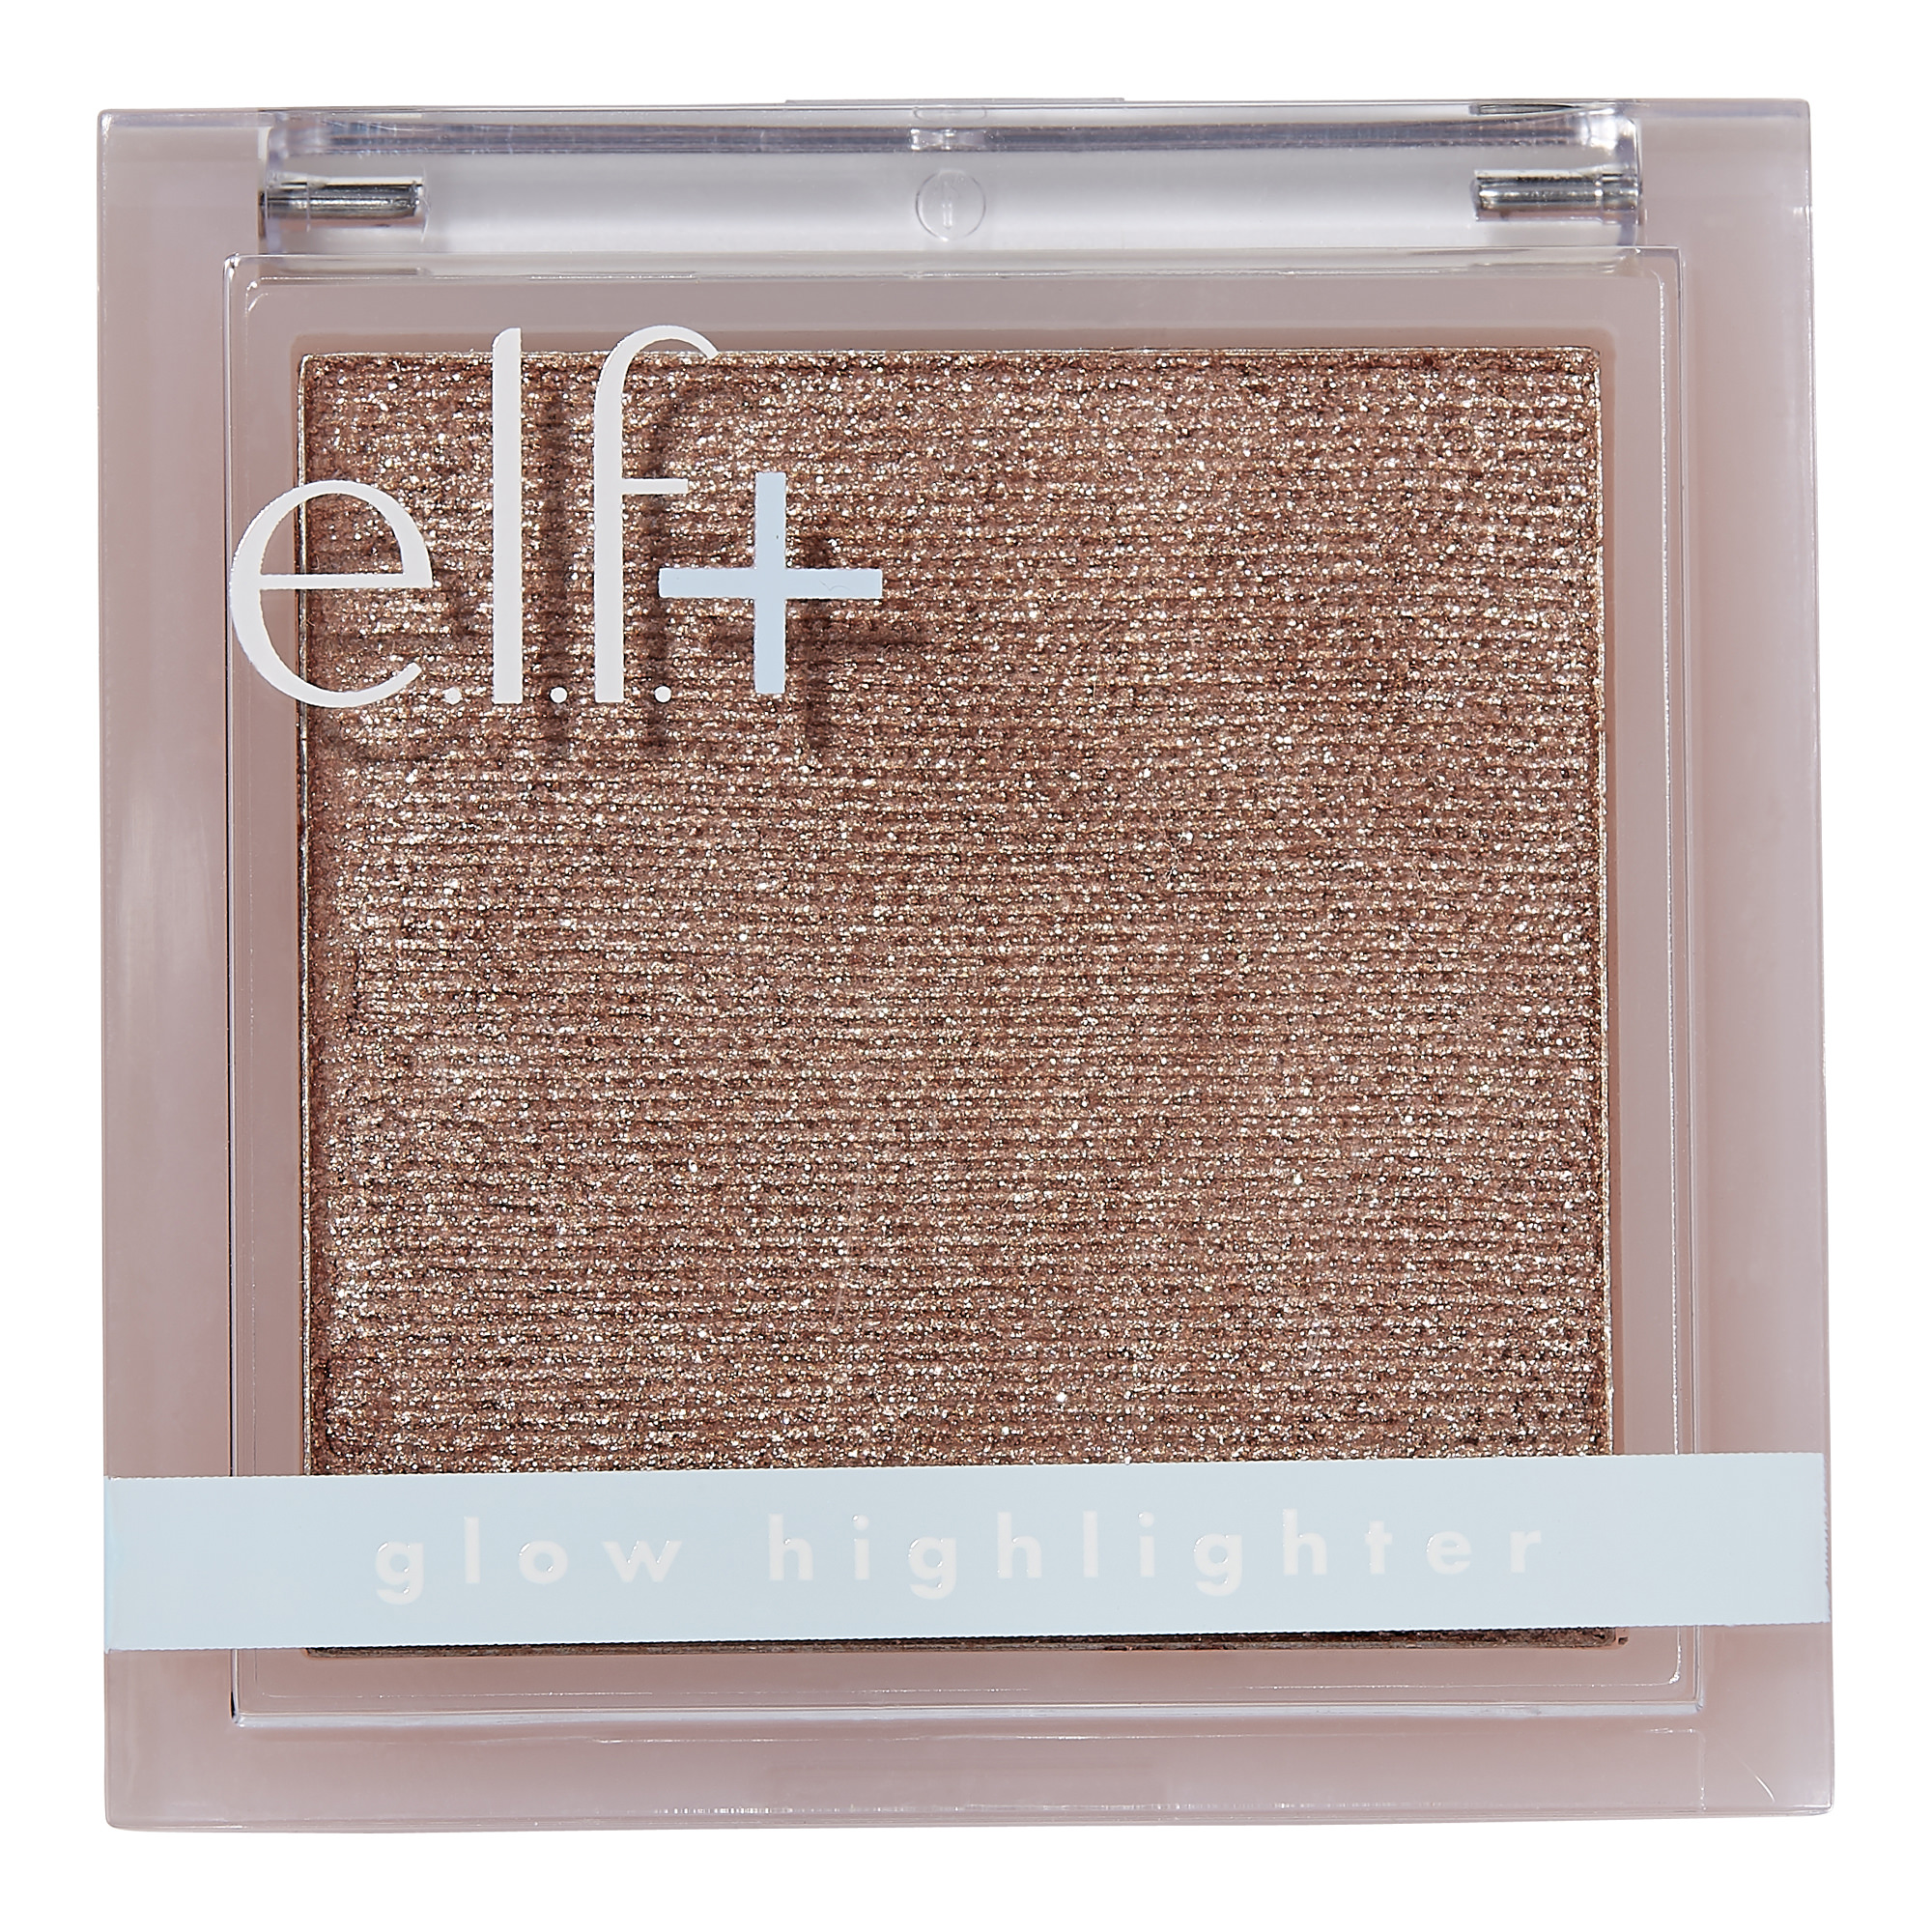 e.l.f. Cosmetics Elf+ Coco Glow Highlighter, Copper